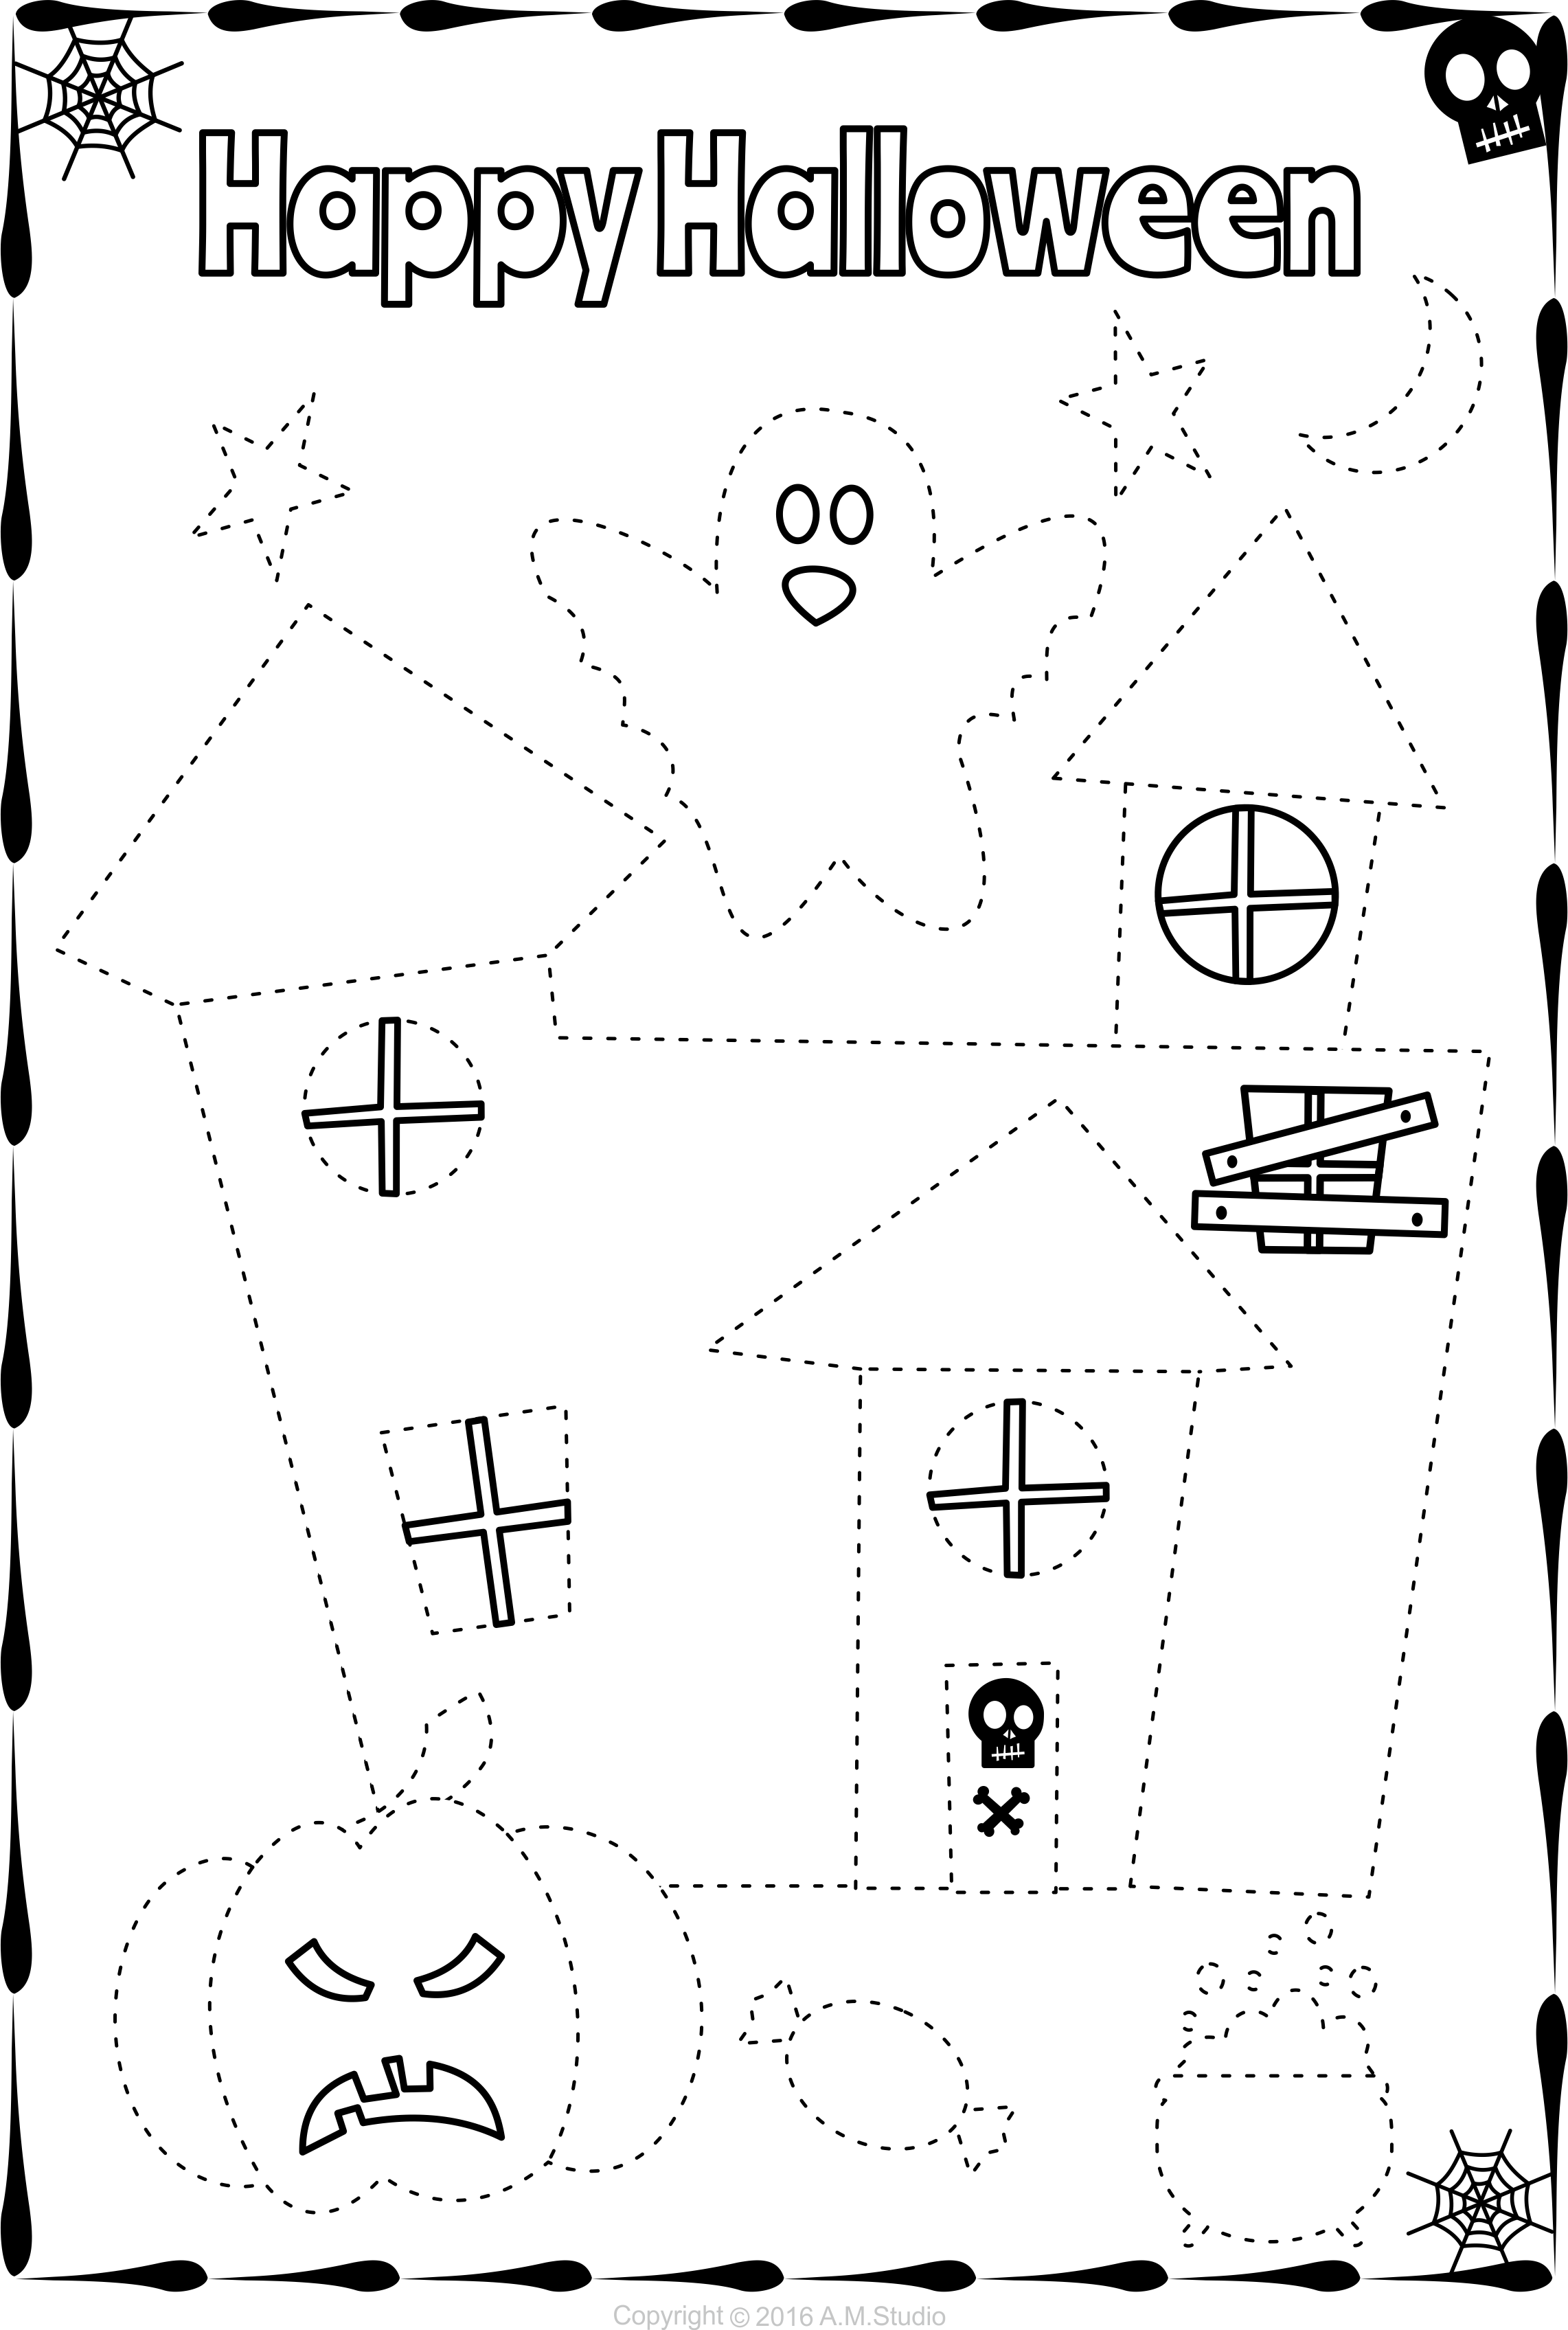 13 Halloween Themed Trace And Color Pages For Kids Halloween Preschool Halloween Worksheets Halloween School [ 3392 x 2283 Pixel ]